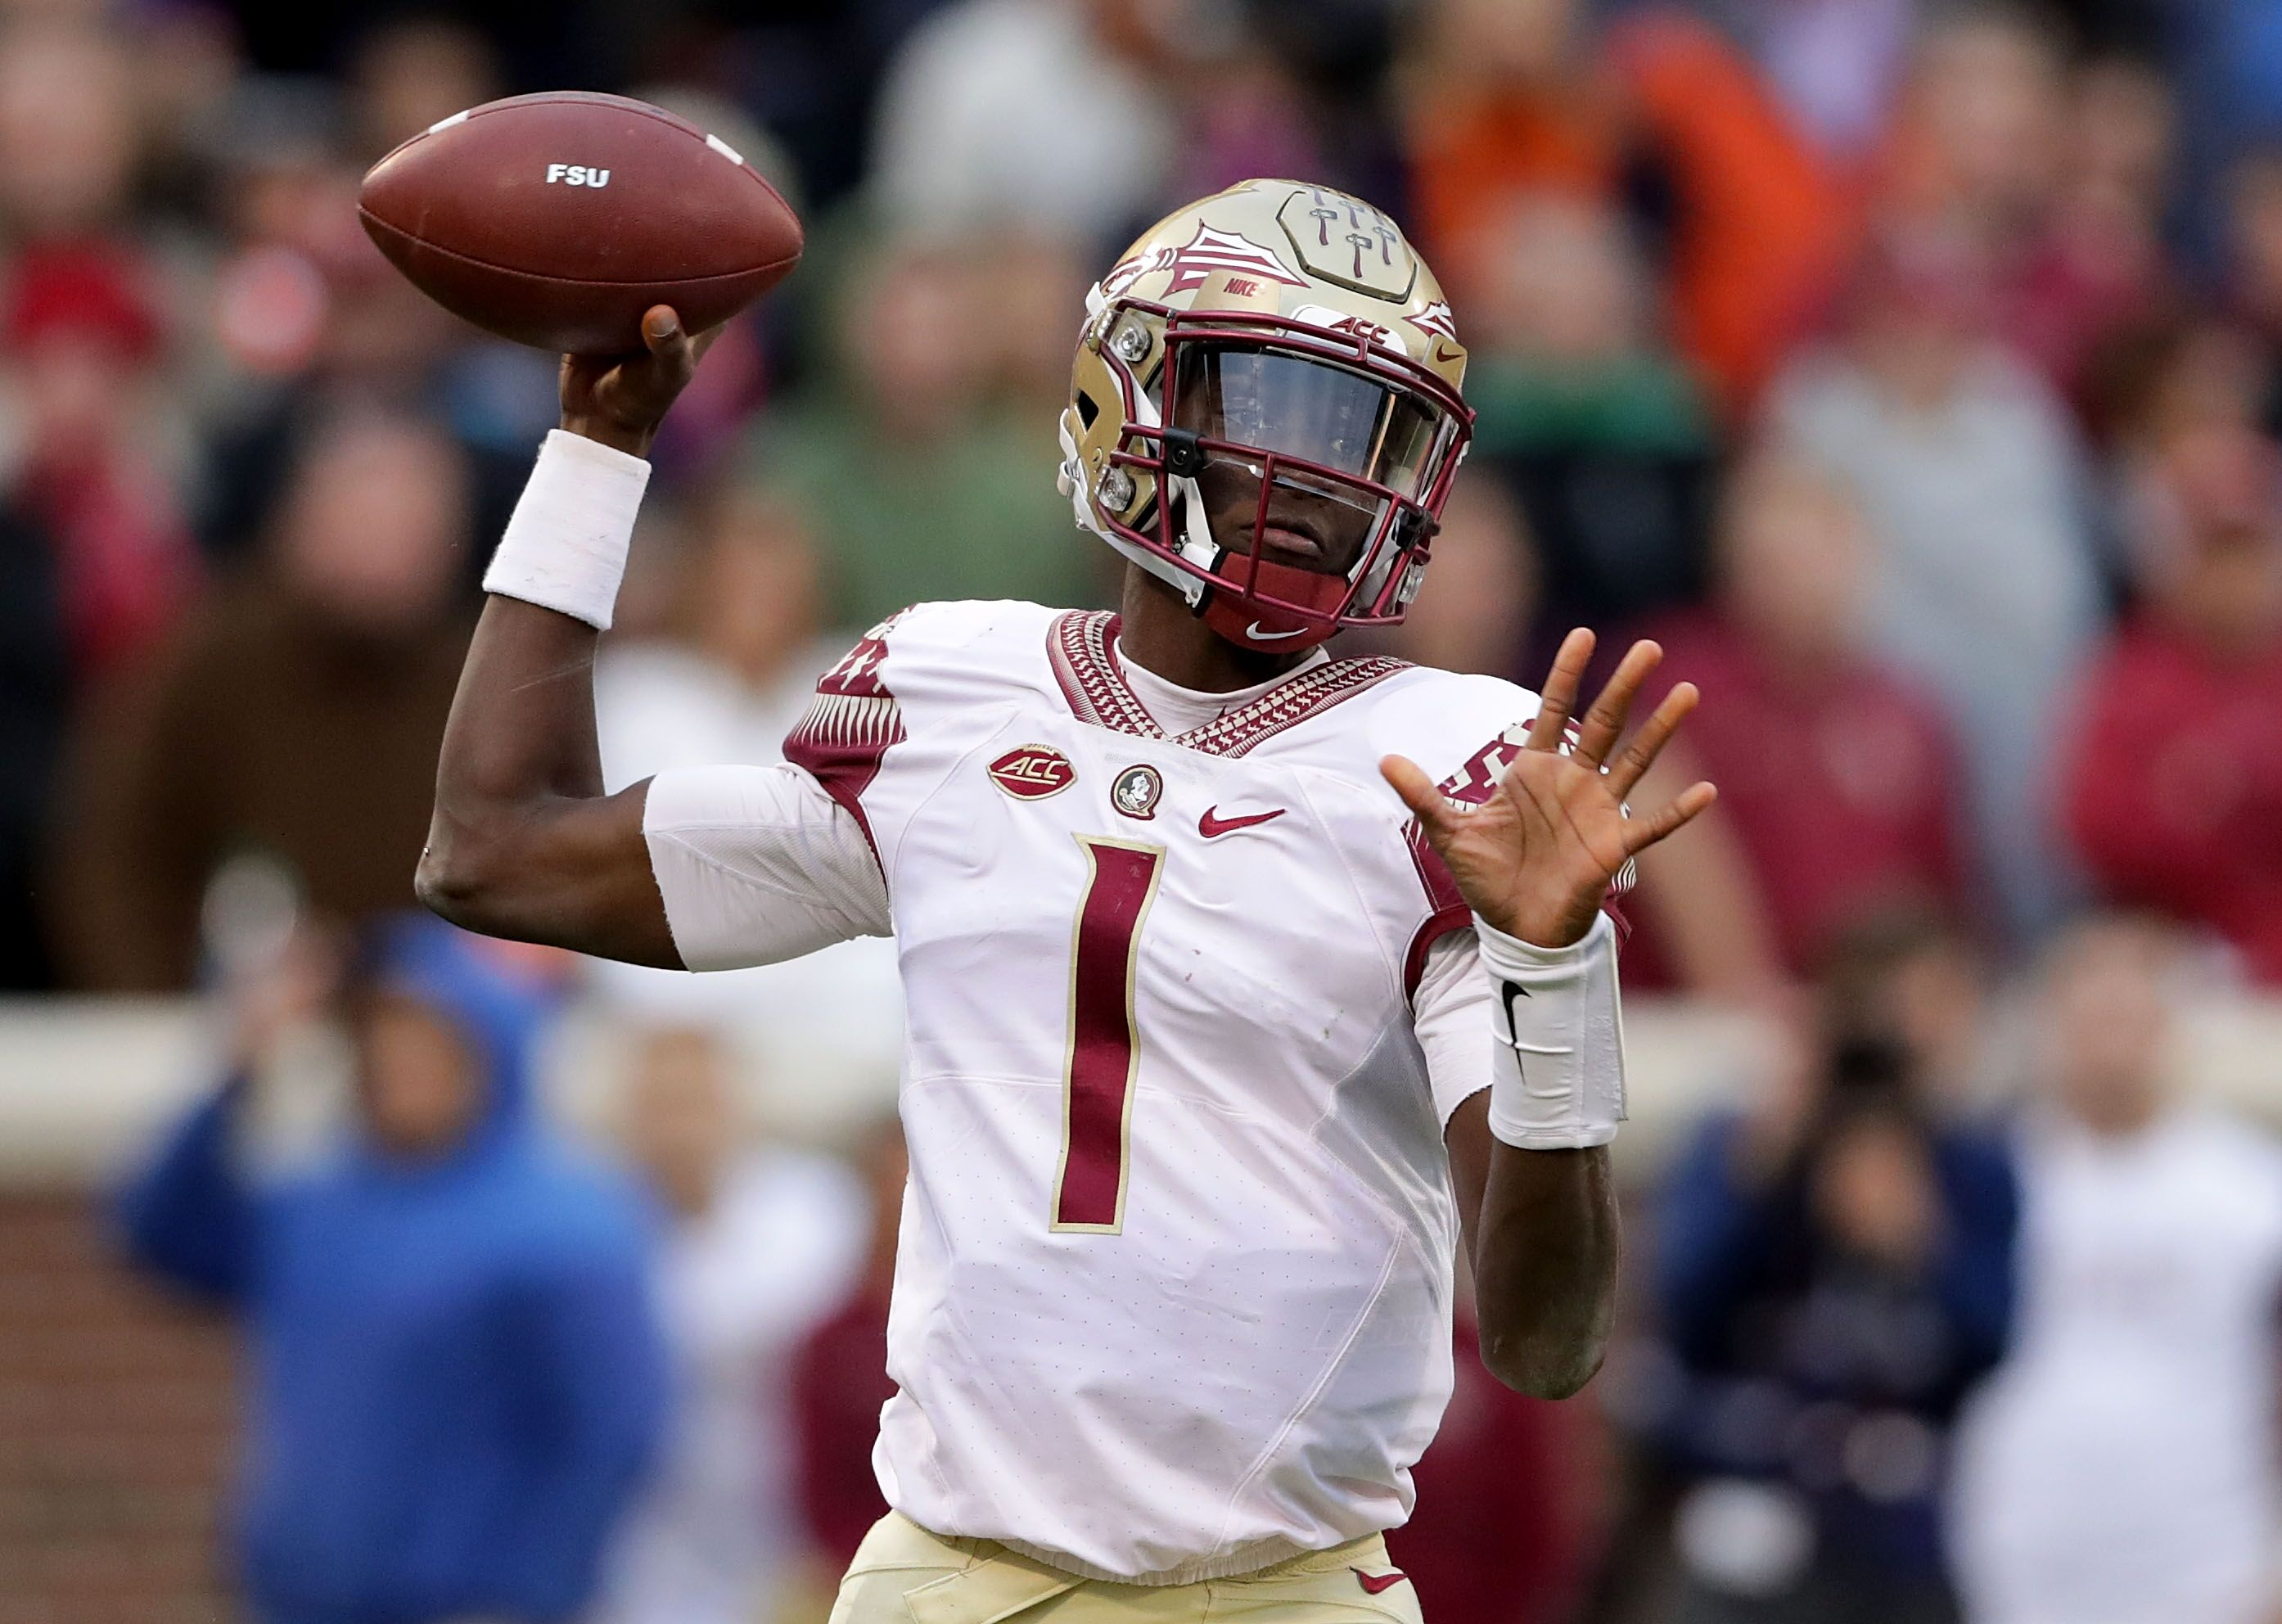 Get the latest Florida State Seminoles news scores stats standings rumors and more from ESPN